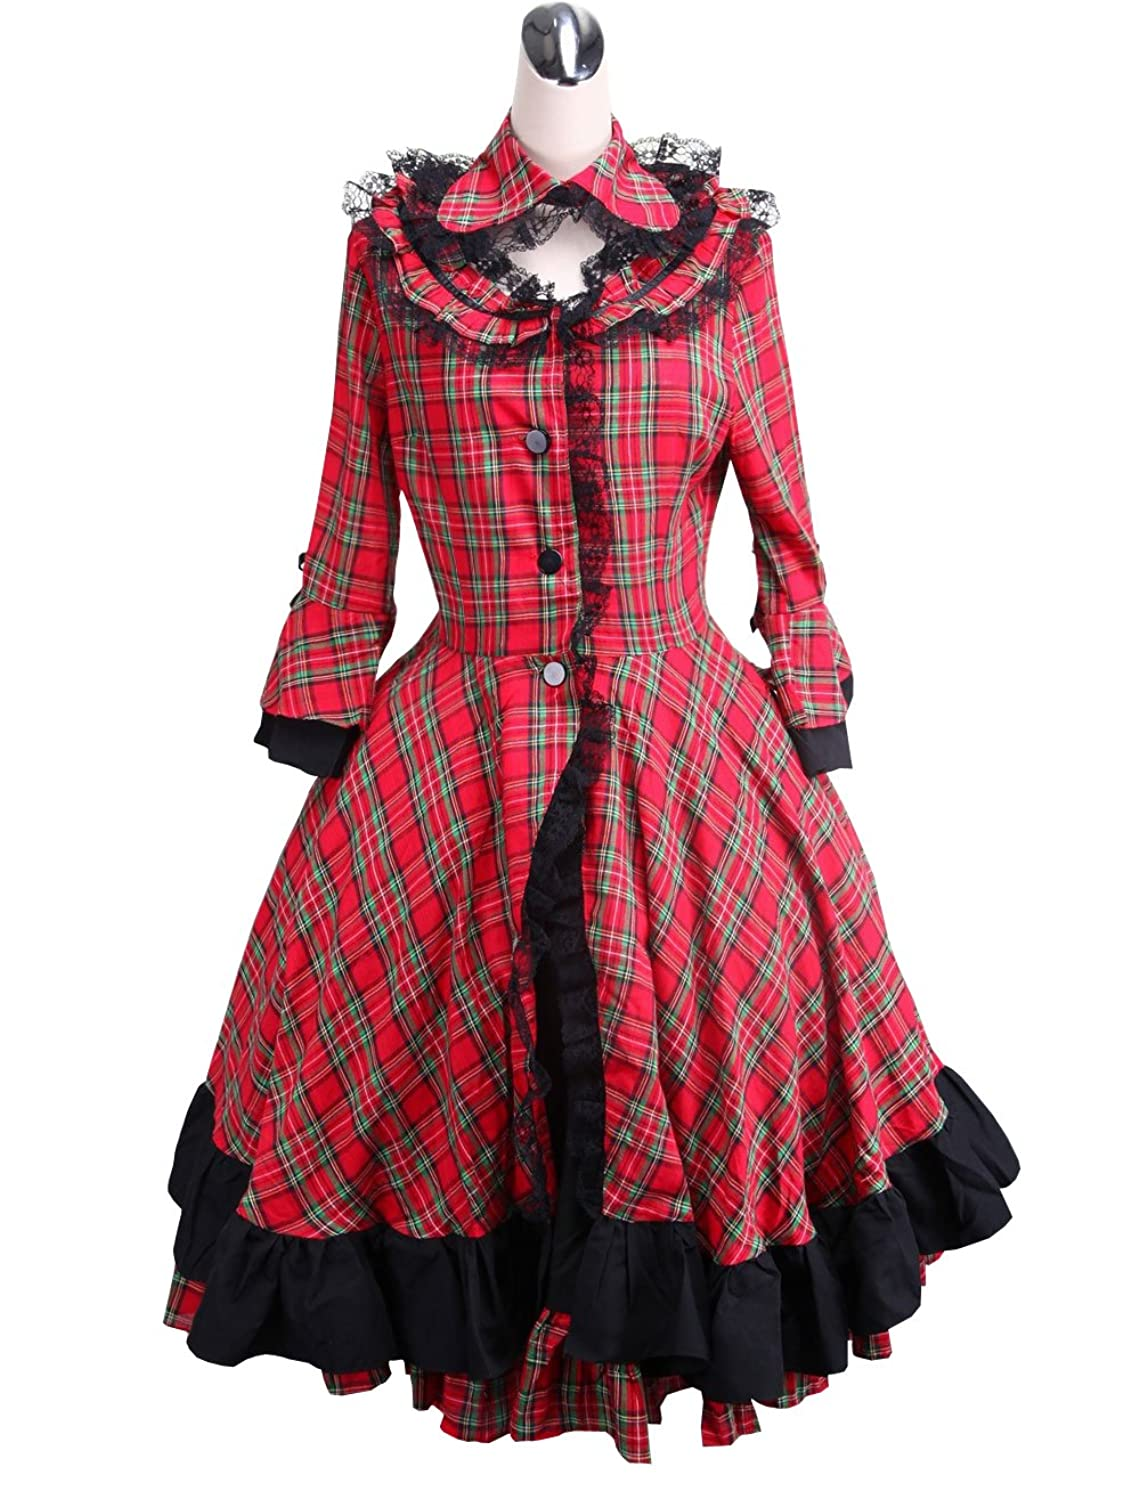 Vintage Style Children's Clothing: Girls, Boys, Baby, Toddler antaina Red Plaid Cotton Black Lace Classic Victorian Lolita Cosplay Coat Dress $58.99 AT vintagedancer.com